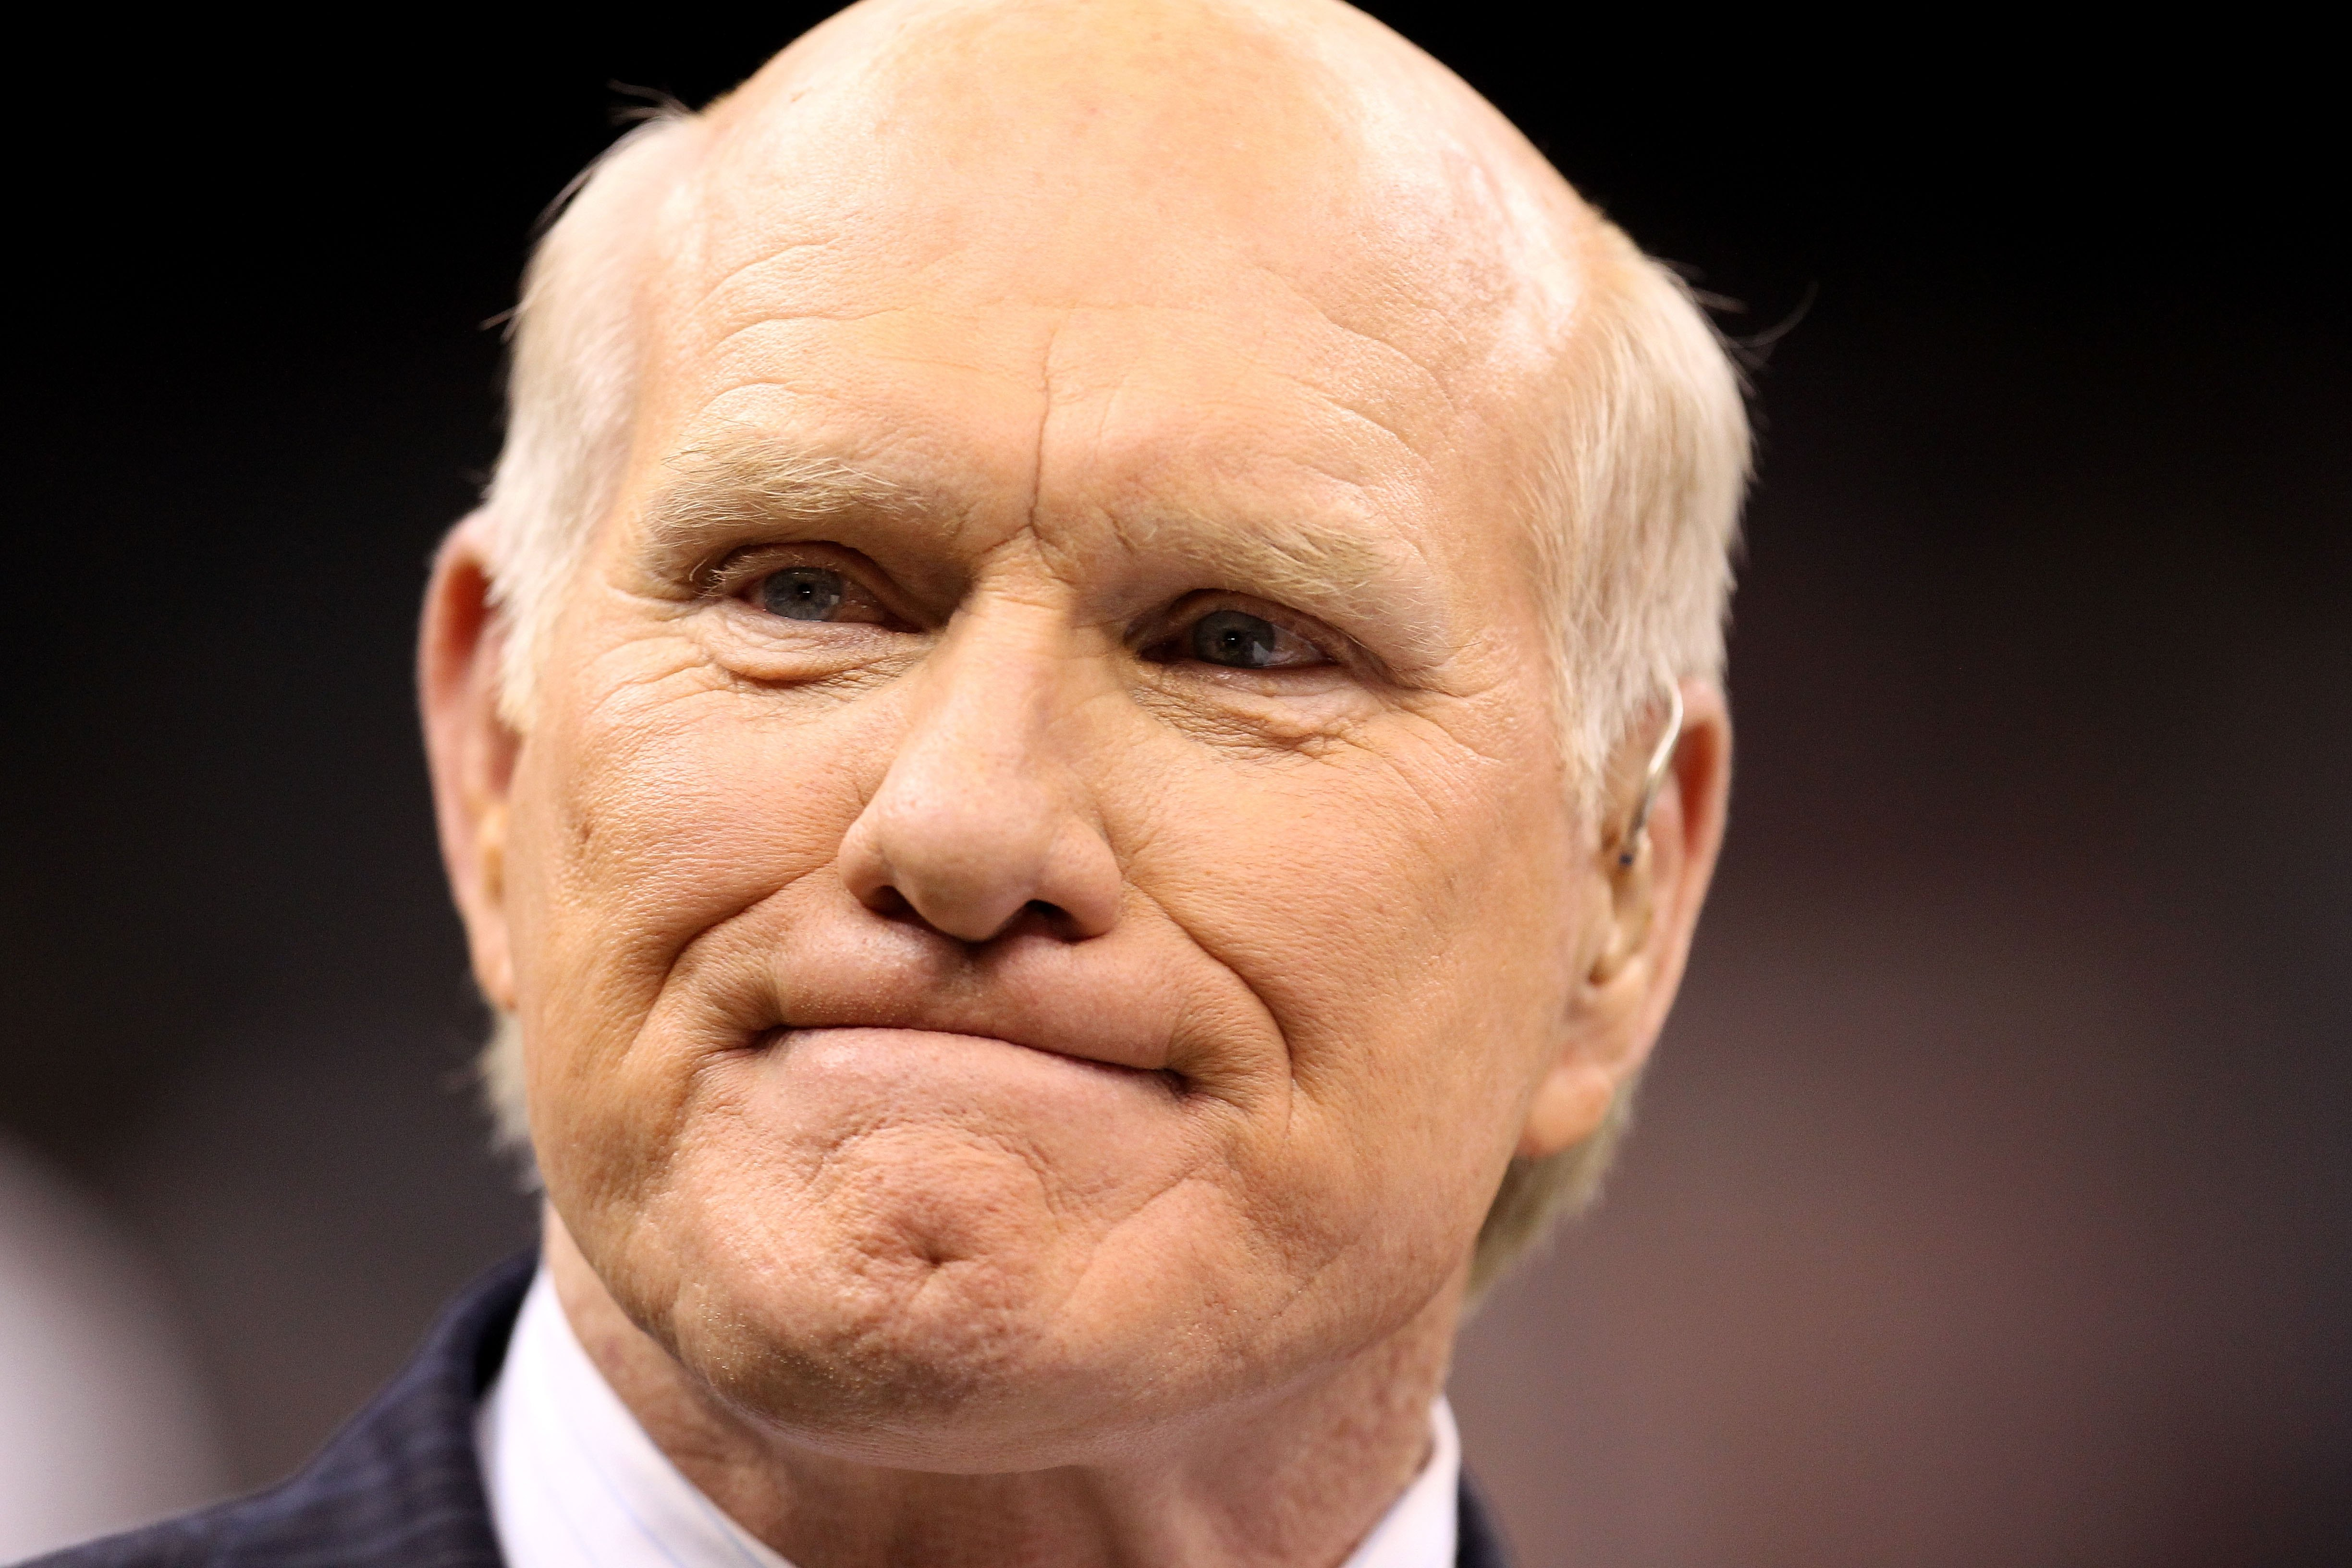 NEW ORLEANS - JANUARY 24:  Hall of Fame quarterback and current Fox Sports football analyst Terry Bradshaw looks on as the New Orleans Saints play against the Minnesota Vikings during the NFC Championship Game at the Louisiana Superdome on January 24, 201